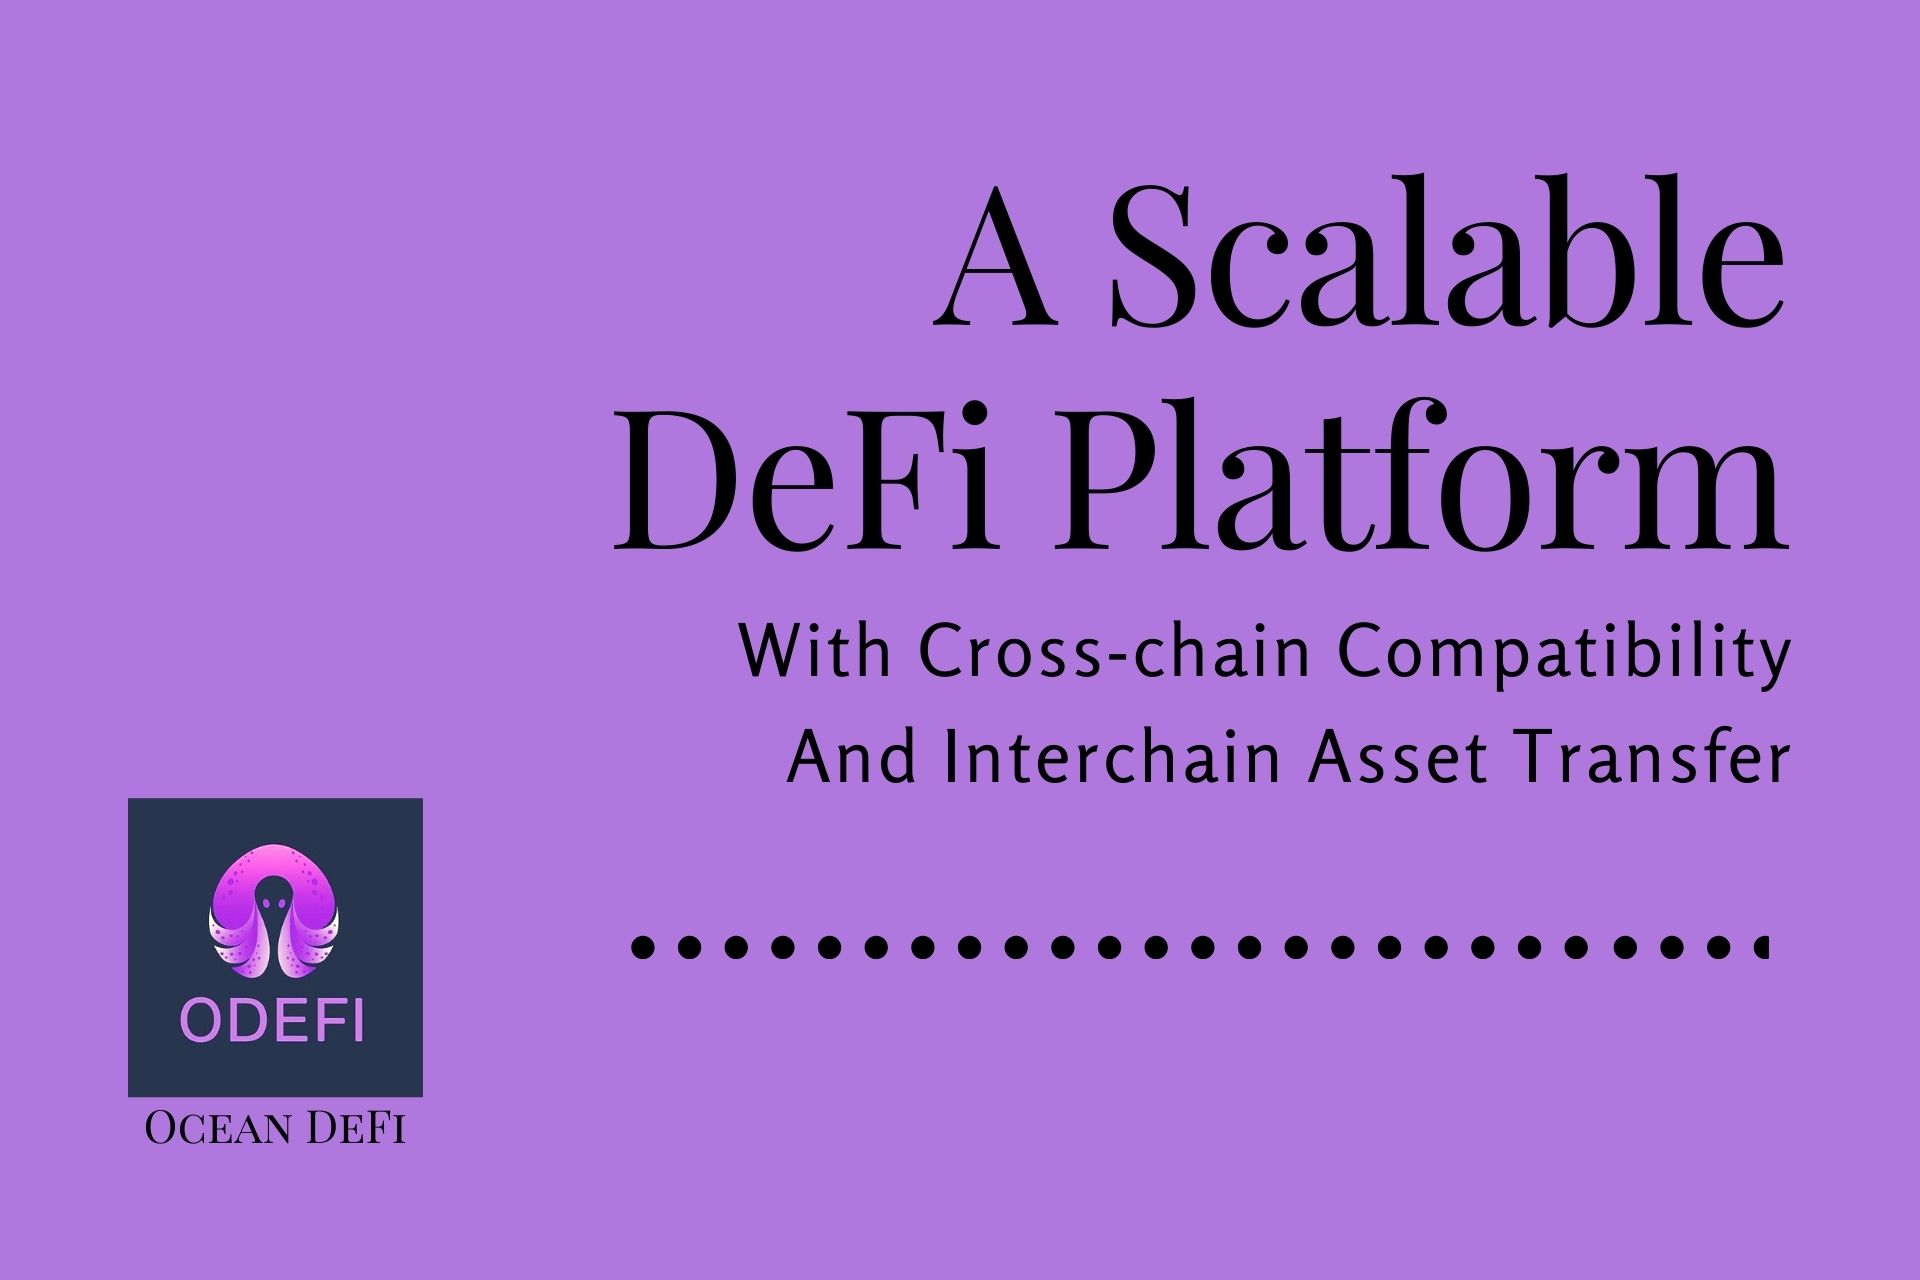 Ocean DeFi (ODEFI) – A Scalable DeFi Platform With Cross-chain Compatibility And Interchain Asset Transfer